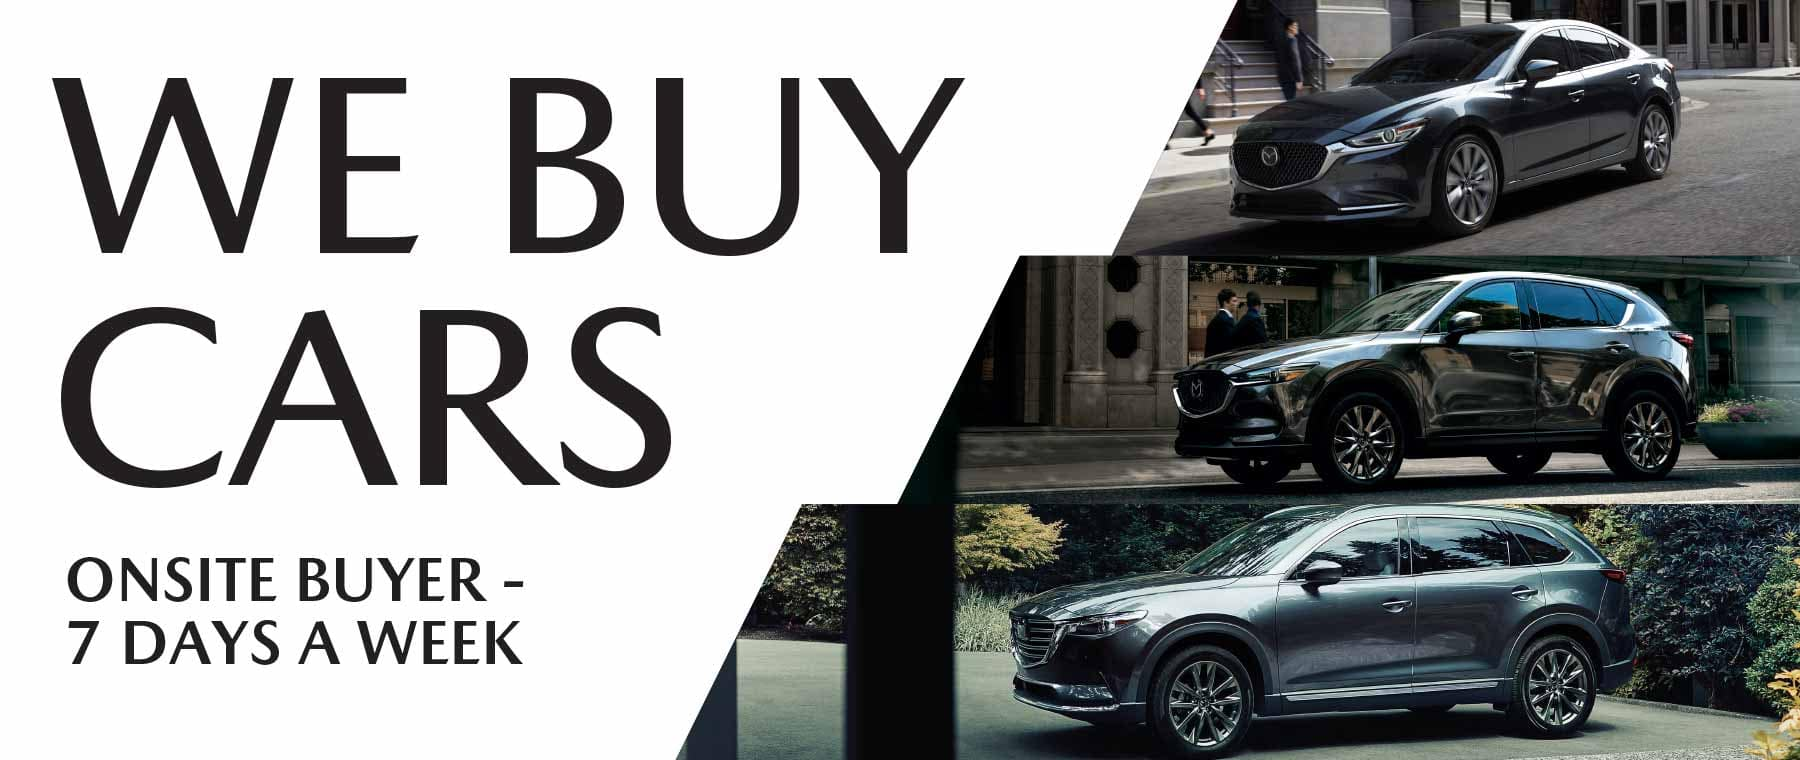 We Buy Cars Special Offer Garden City Mazda NY